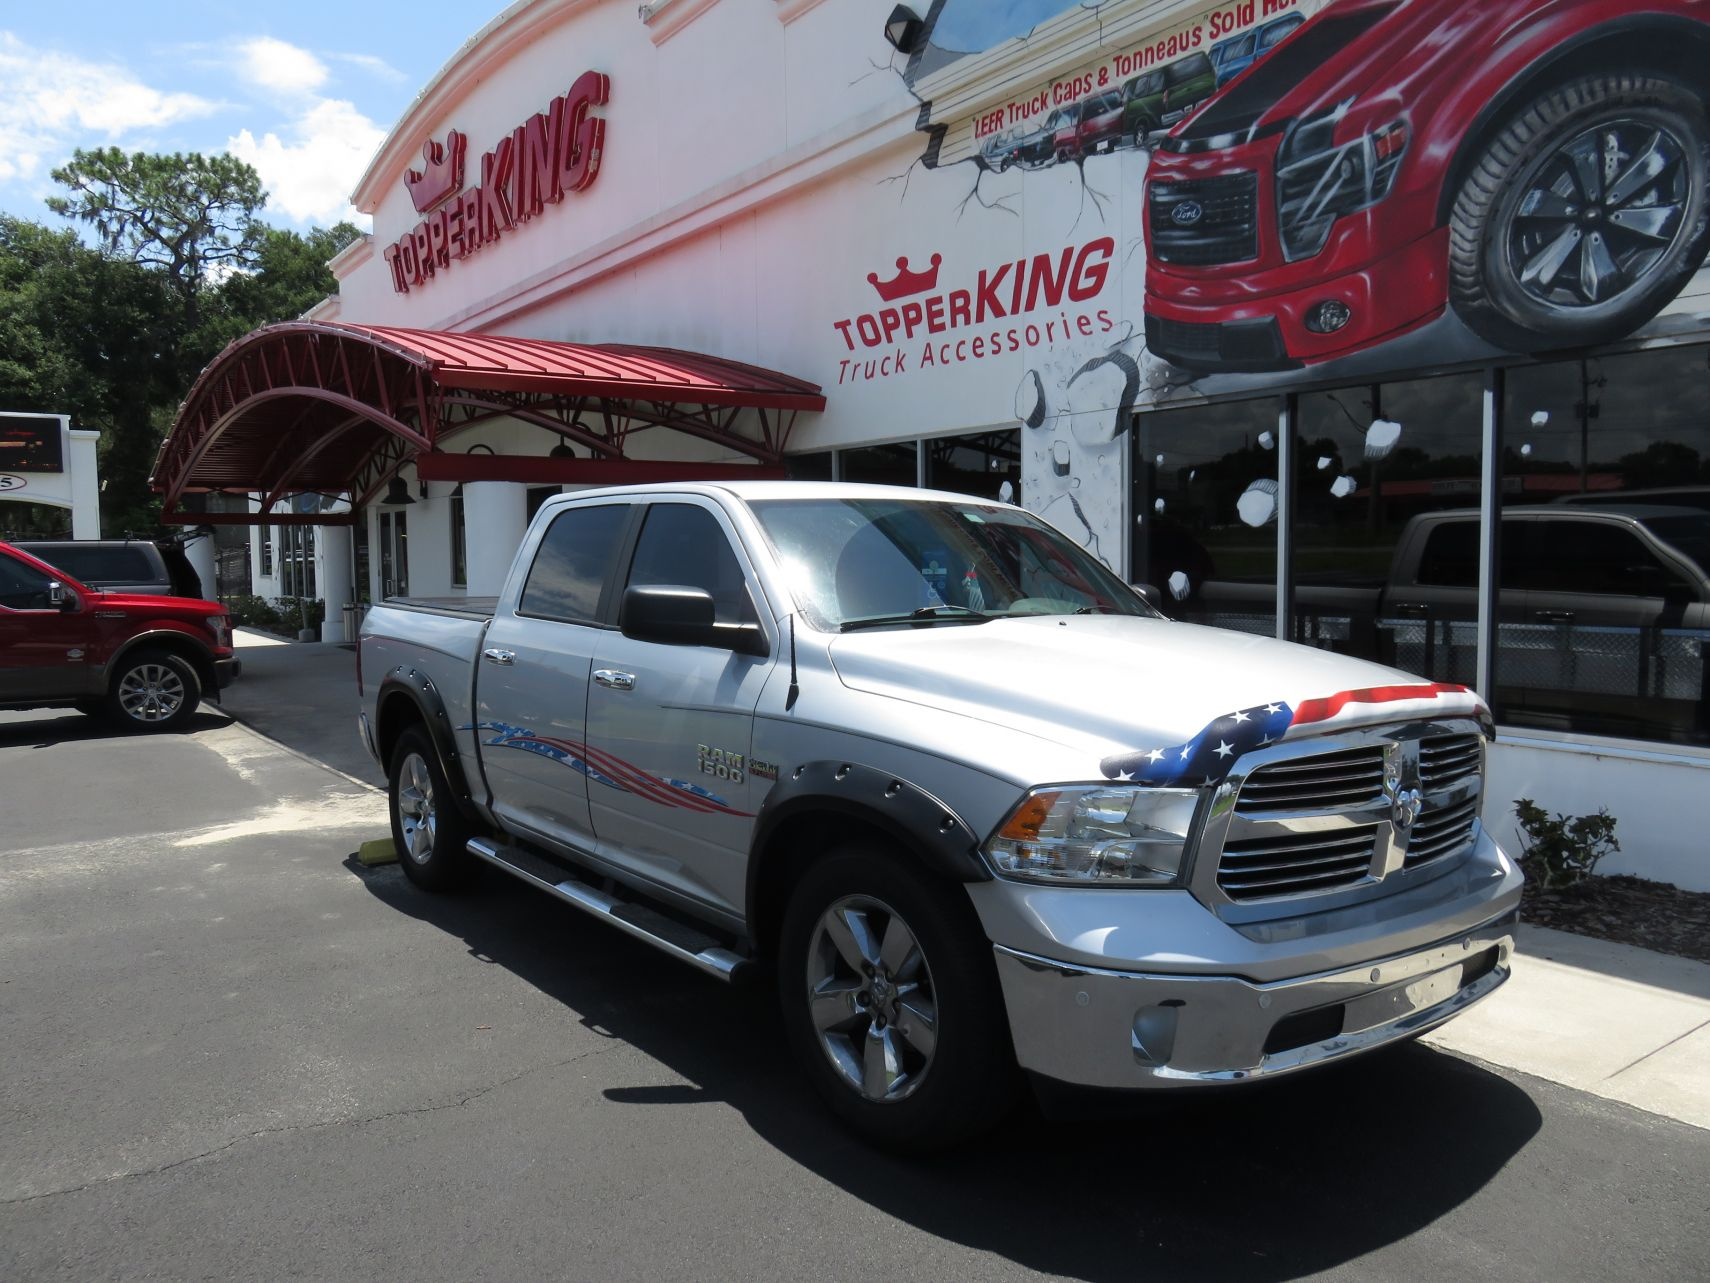 2015 Silver Dodge Ram 1500 Patriotic Decals and Hood Guard, LEER Trilogy X2T by TopperKING in Brandon, FL 813-689-2449 or Clearwater, FL 727-530-9066.